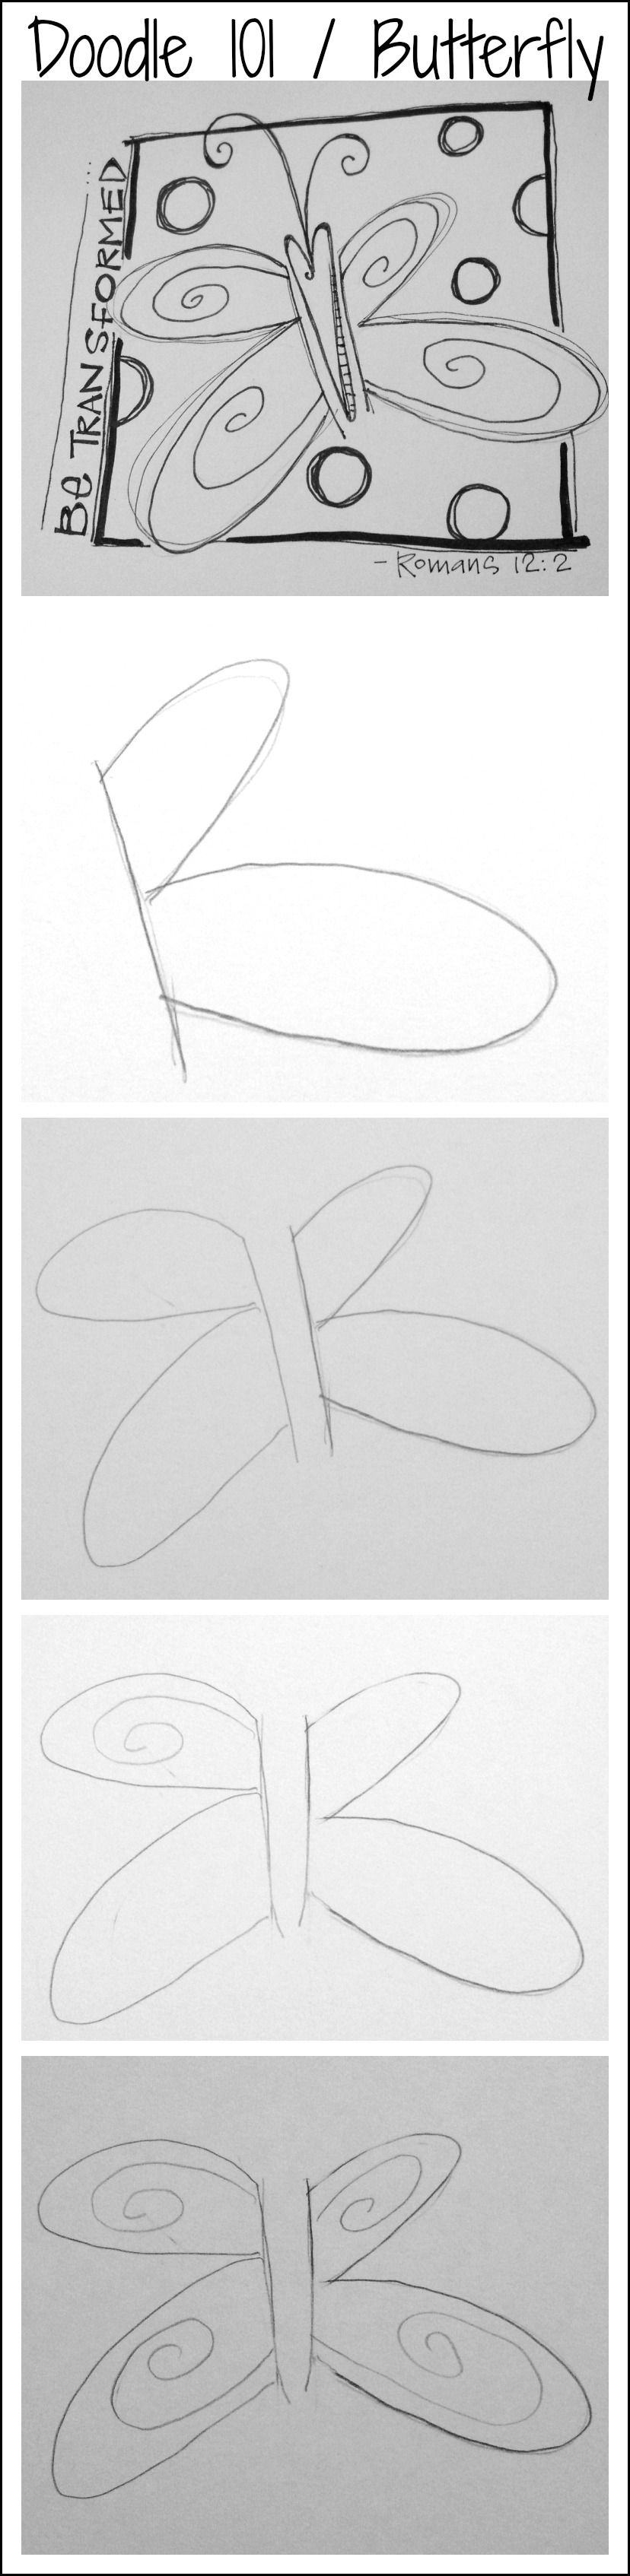 Doodle 101 The Butterfly